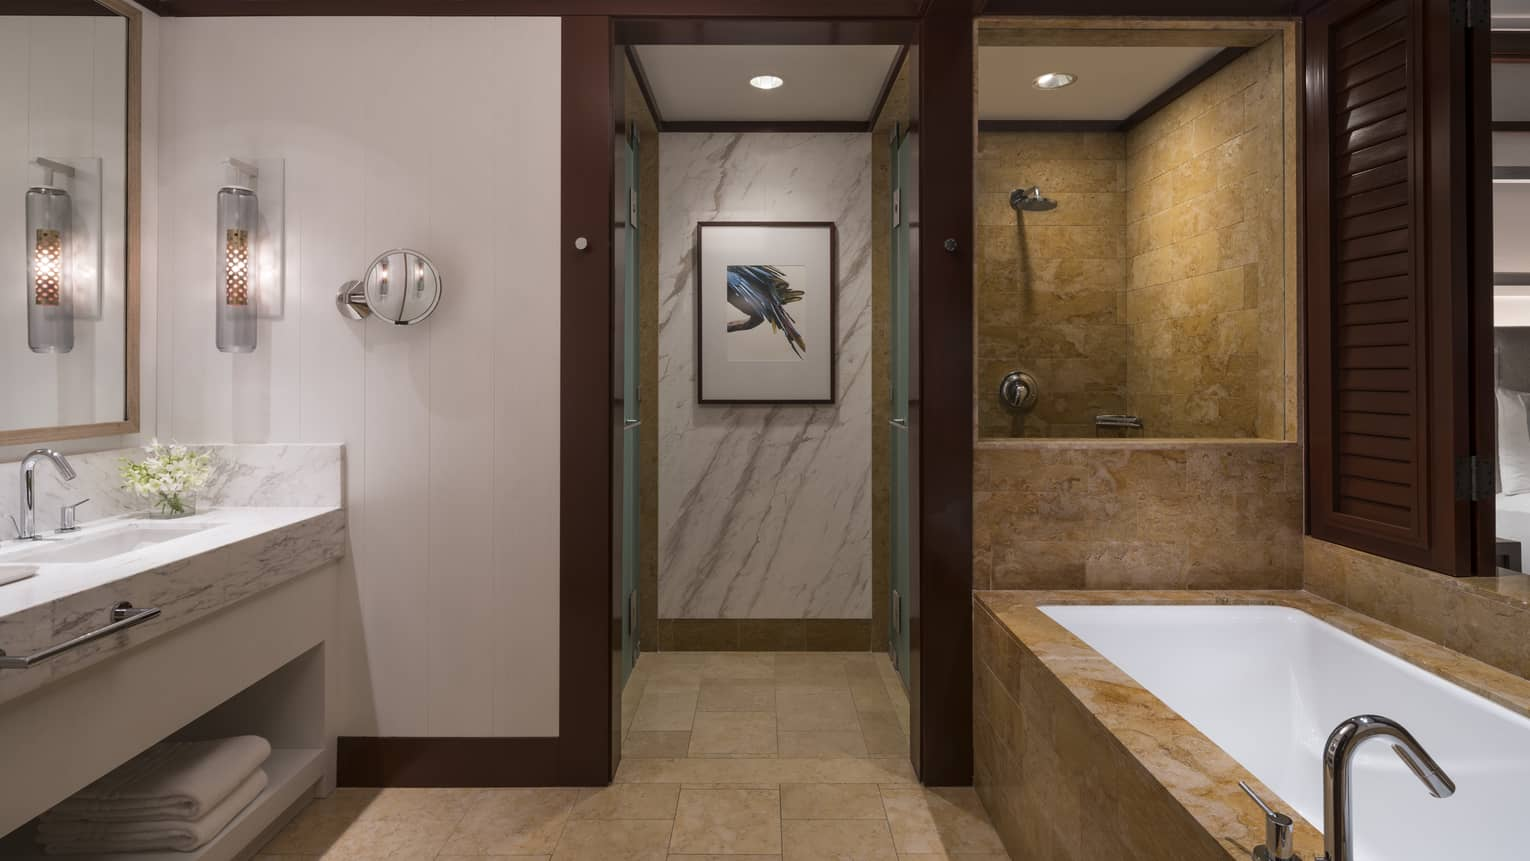 Bathroom Interior Featuring Bathtub, Shower, Sinks, and Interior Hallway